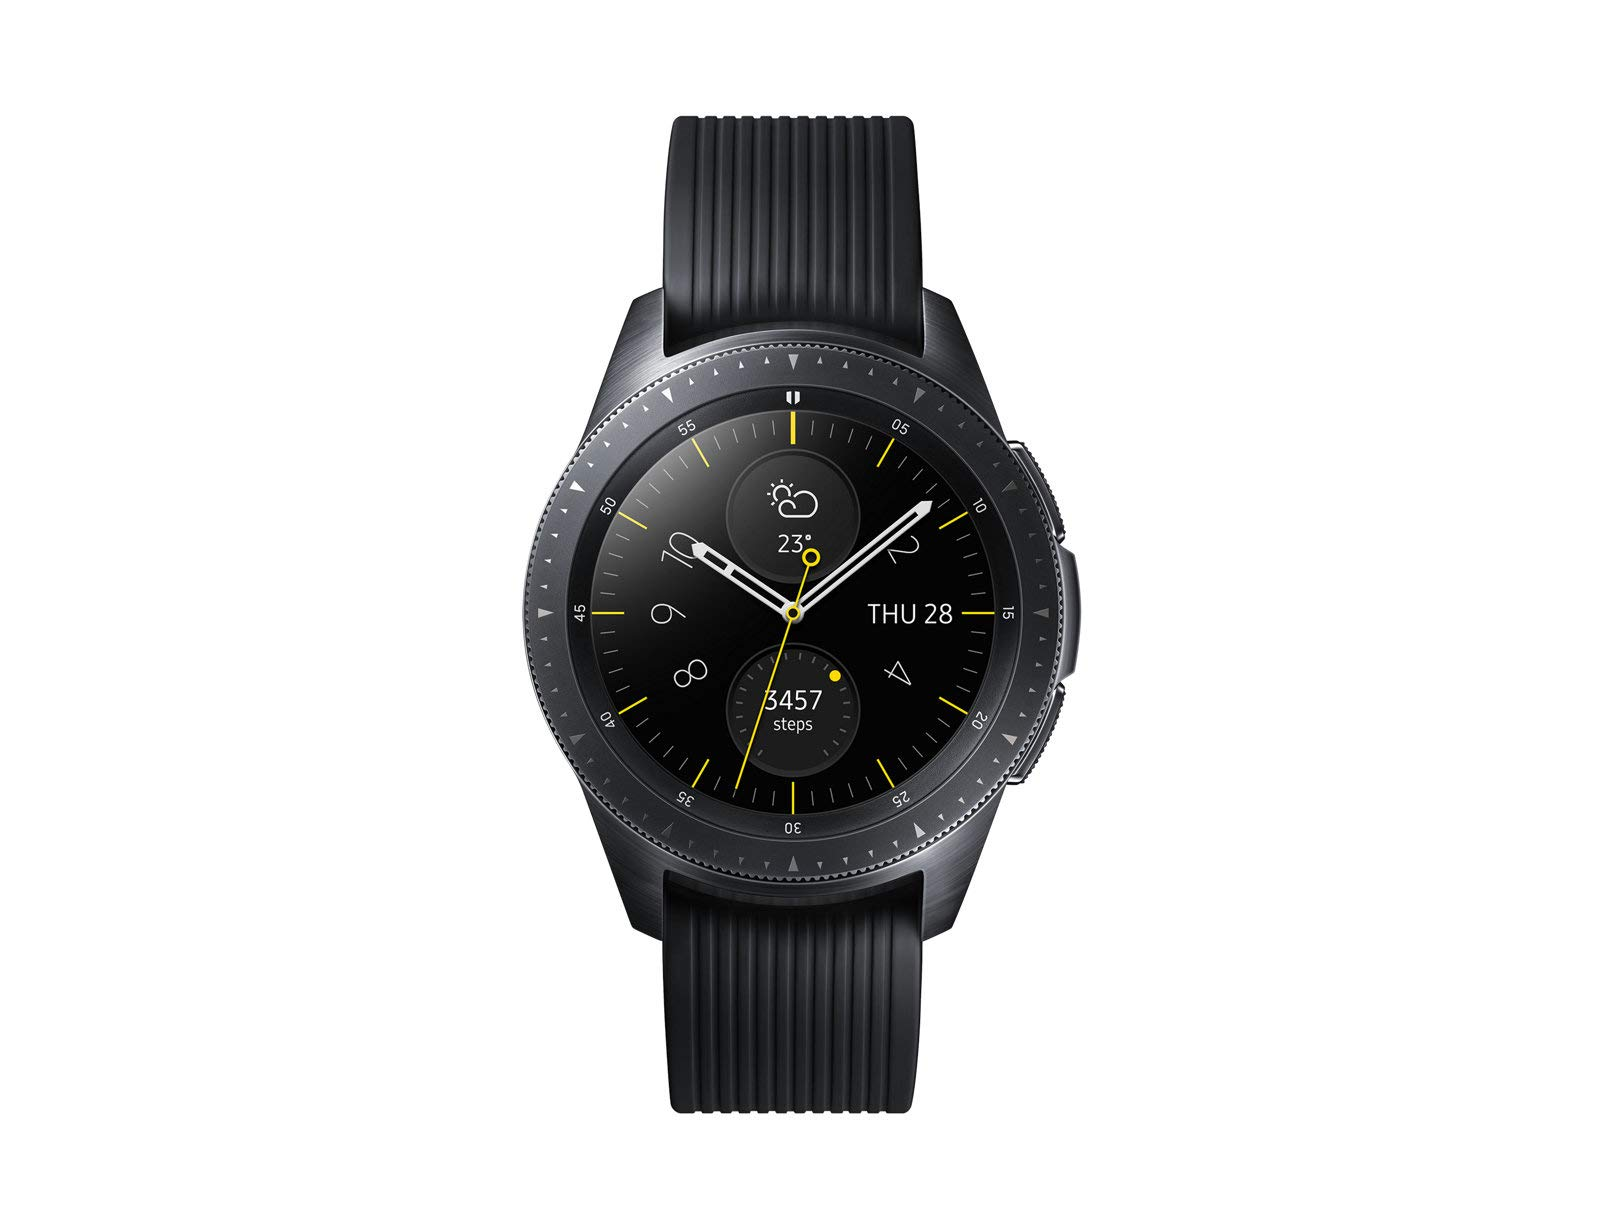 Samsung Galaxy Watch Smartwatch, Nero, Bluetooth, 42 mm [Versione Italiana] product image